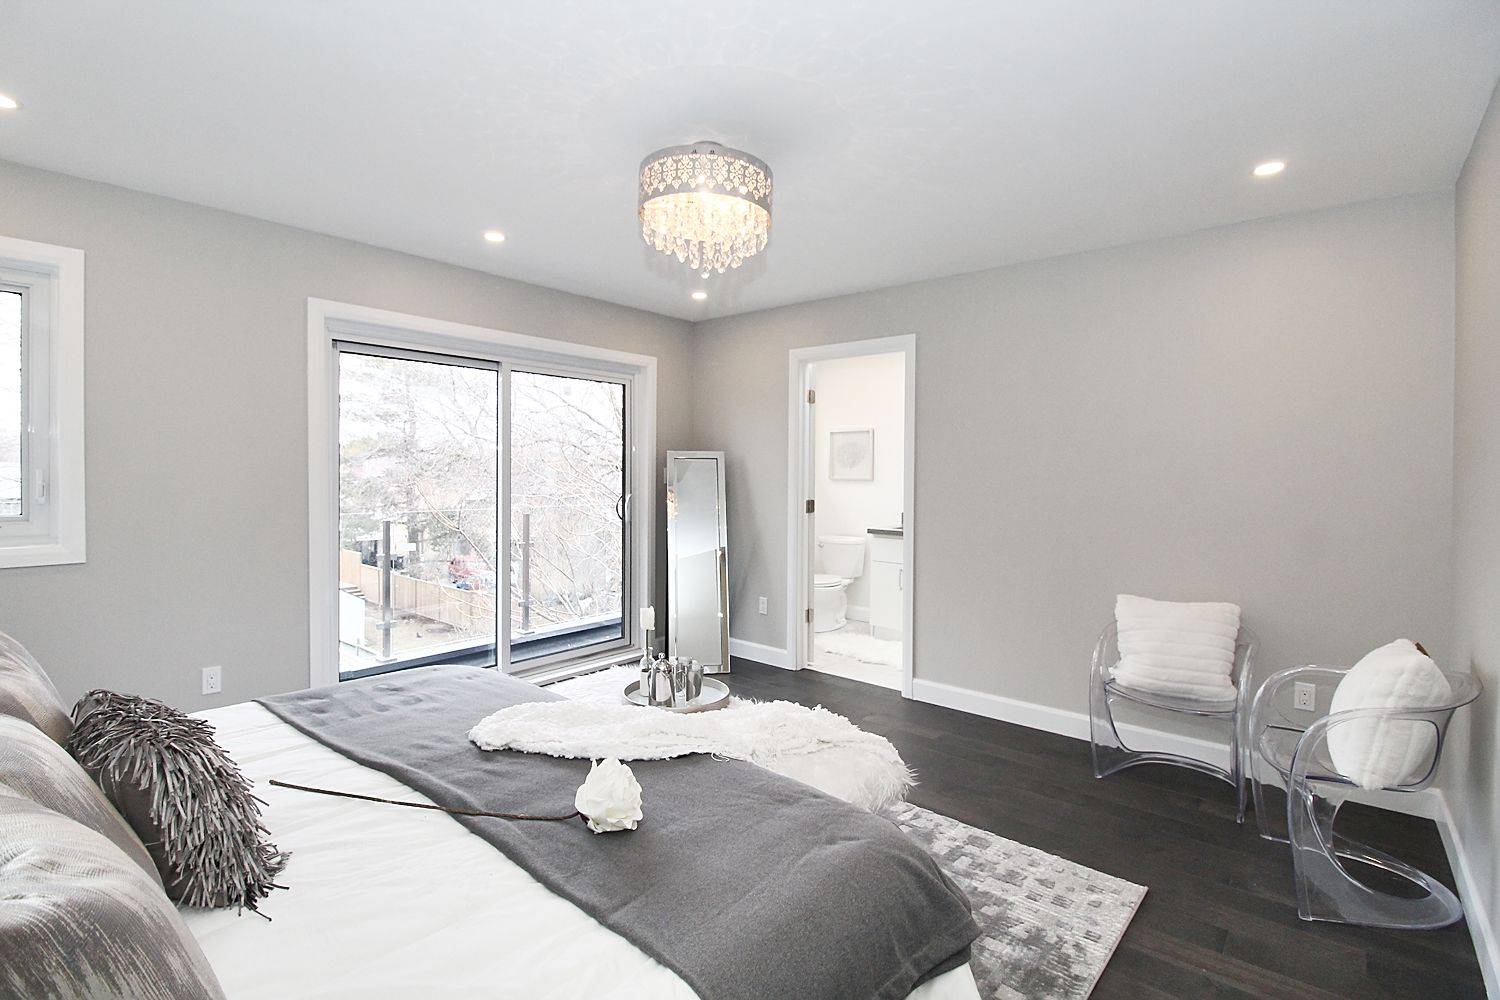 Fourth Bedroom View, 182 Oak Park, East York Home Staging